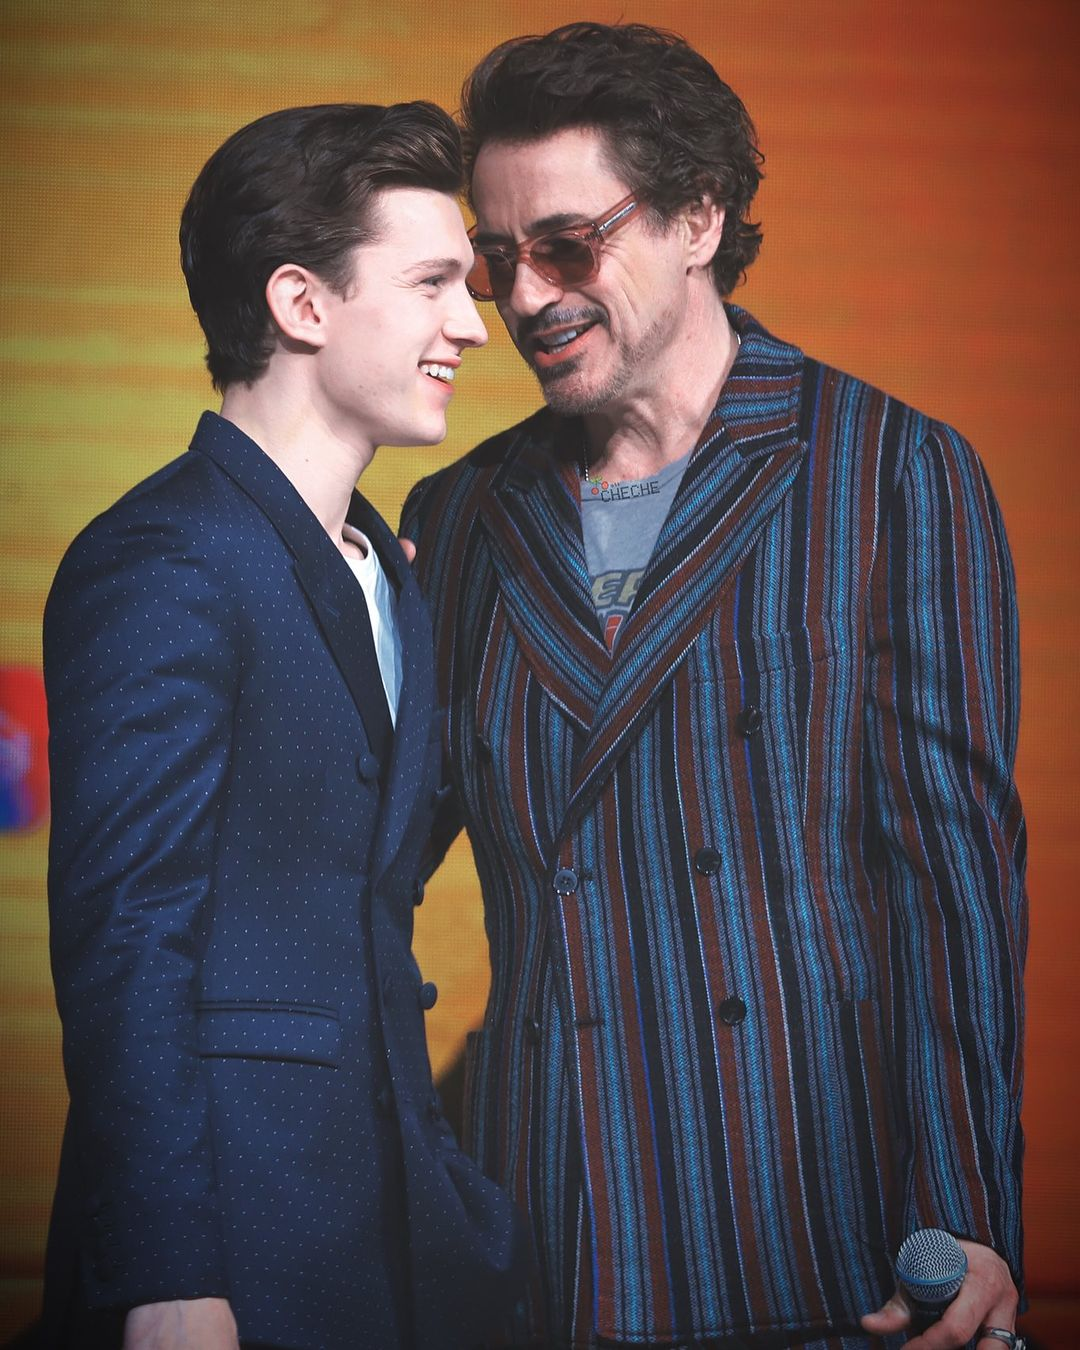 Father Son Tom Holland Spiderman Fotos De Spiderman Chicos Atractivos